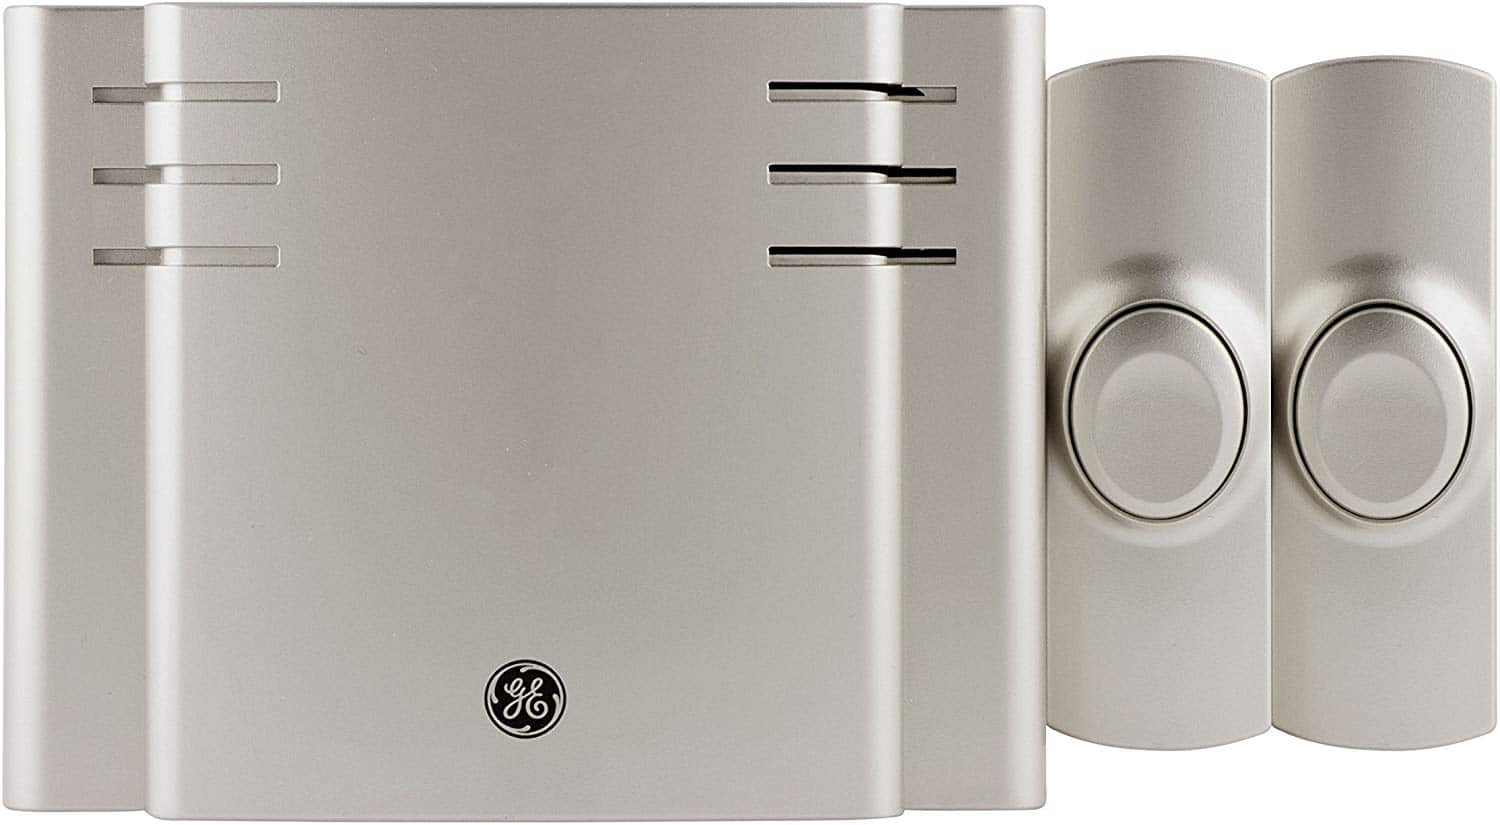 GE Wireless Doorbell